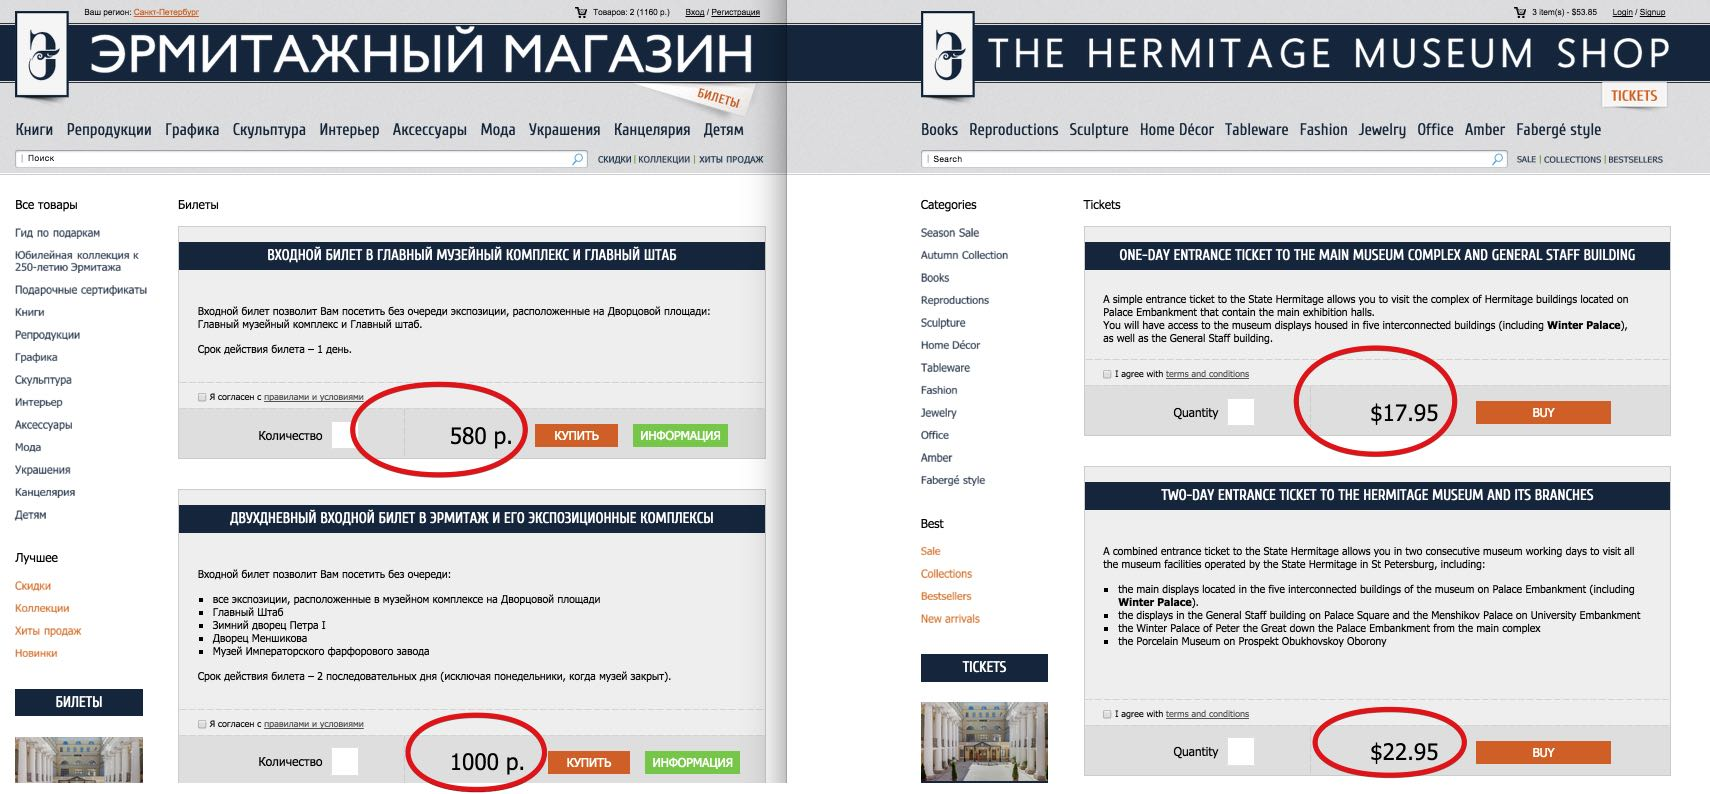 Hermitage ticket prices - Russian and English version